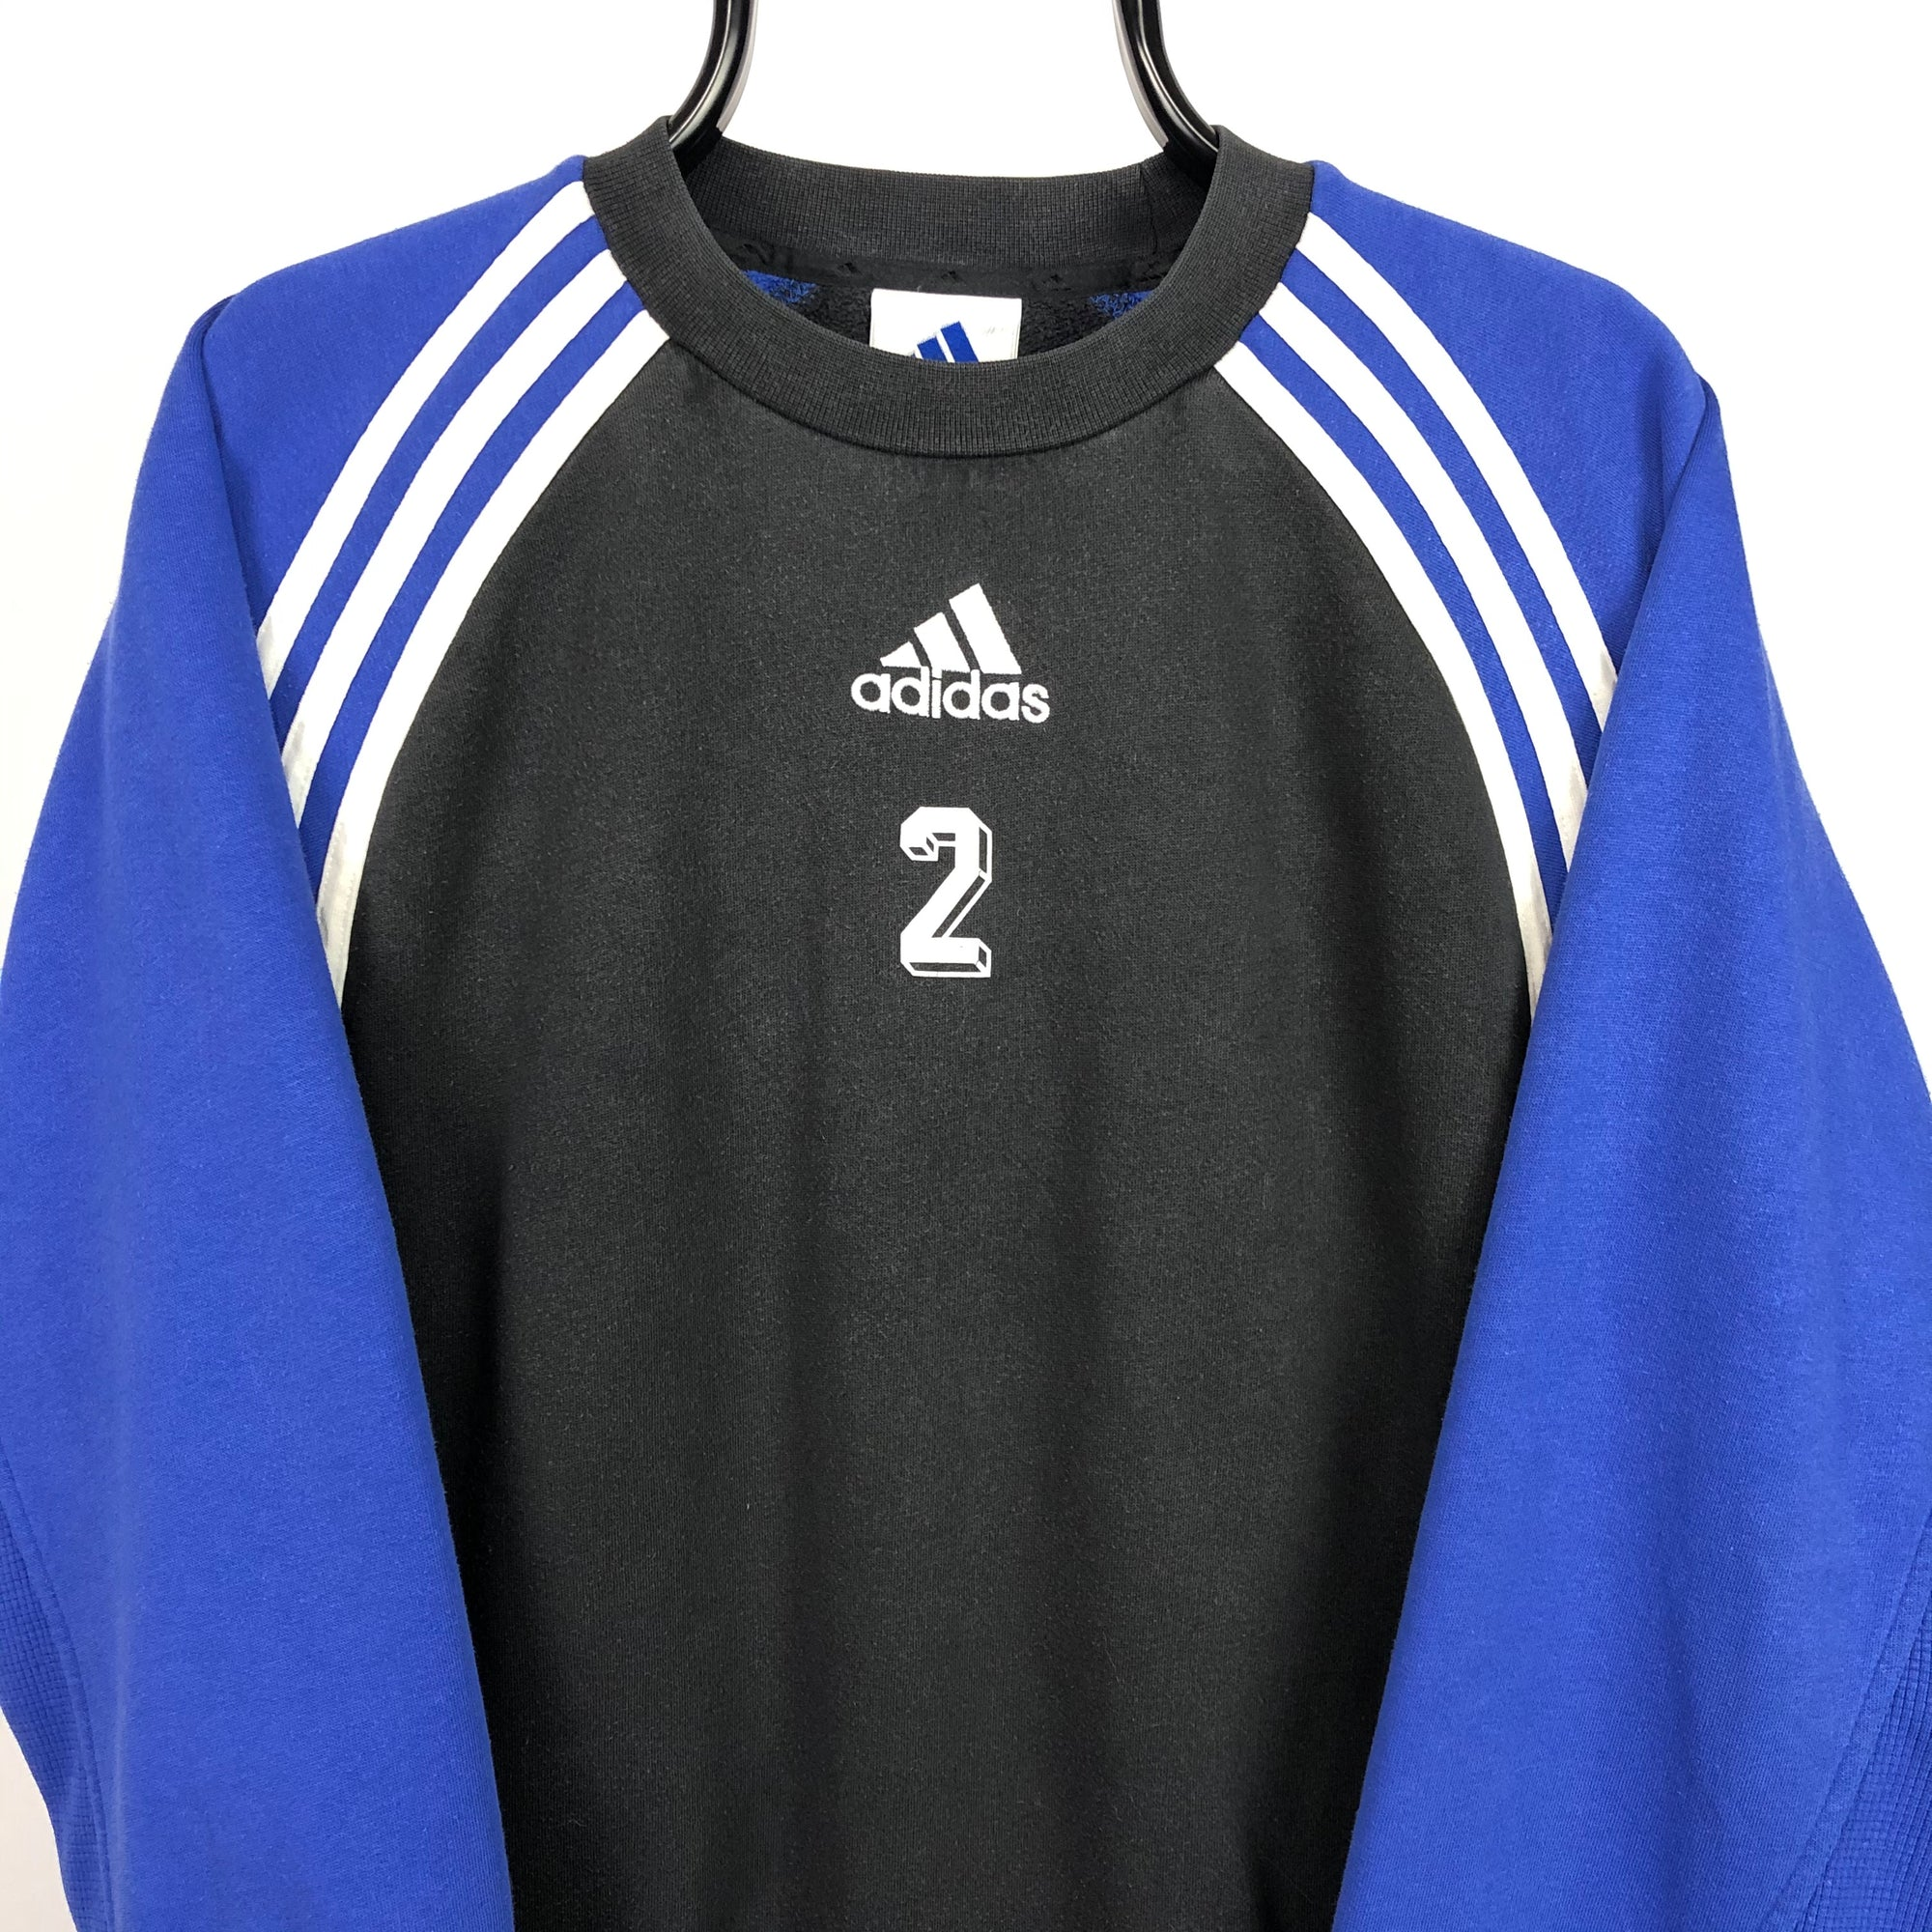 Vintage 90s Adidas Embroidered Centre Logo Sweatshirt in Black/Blue/White - Men's Medium/Women's Large